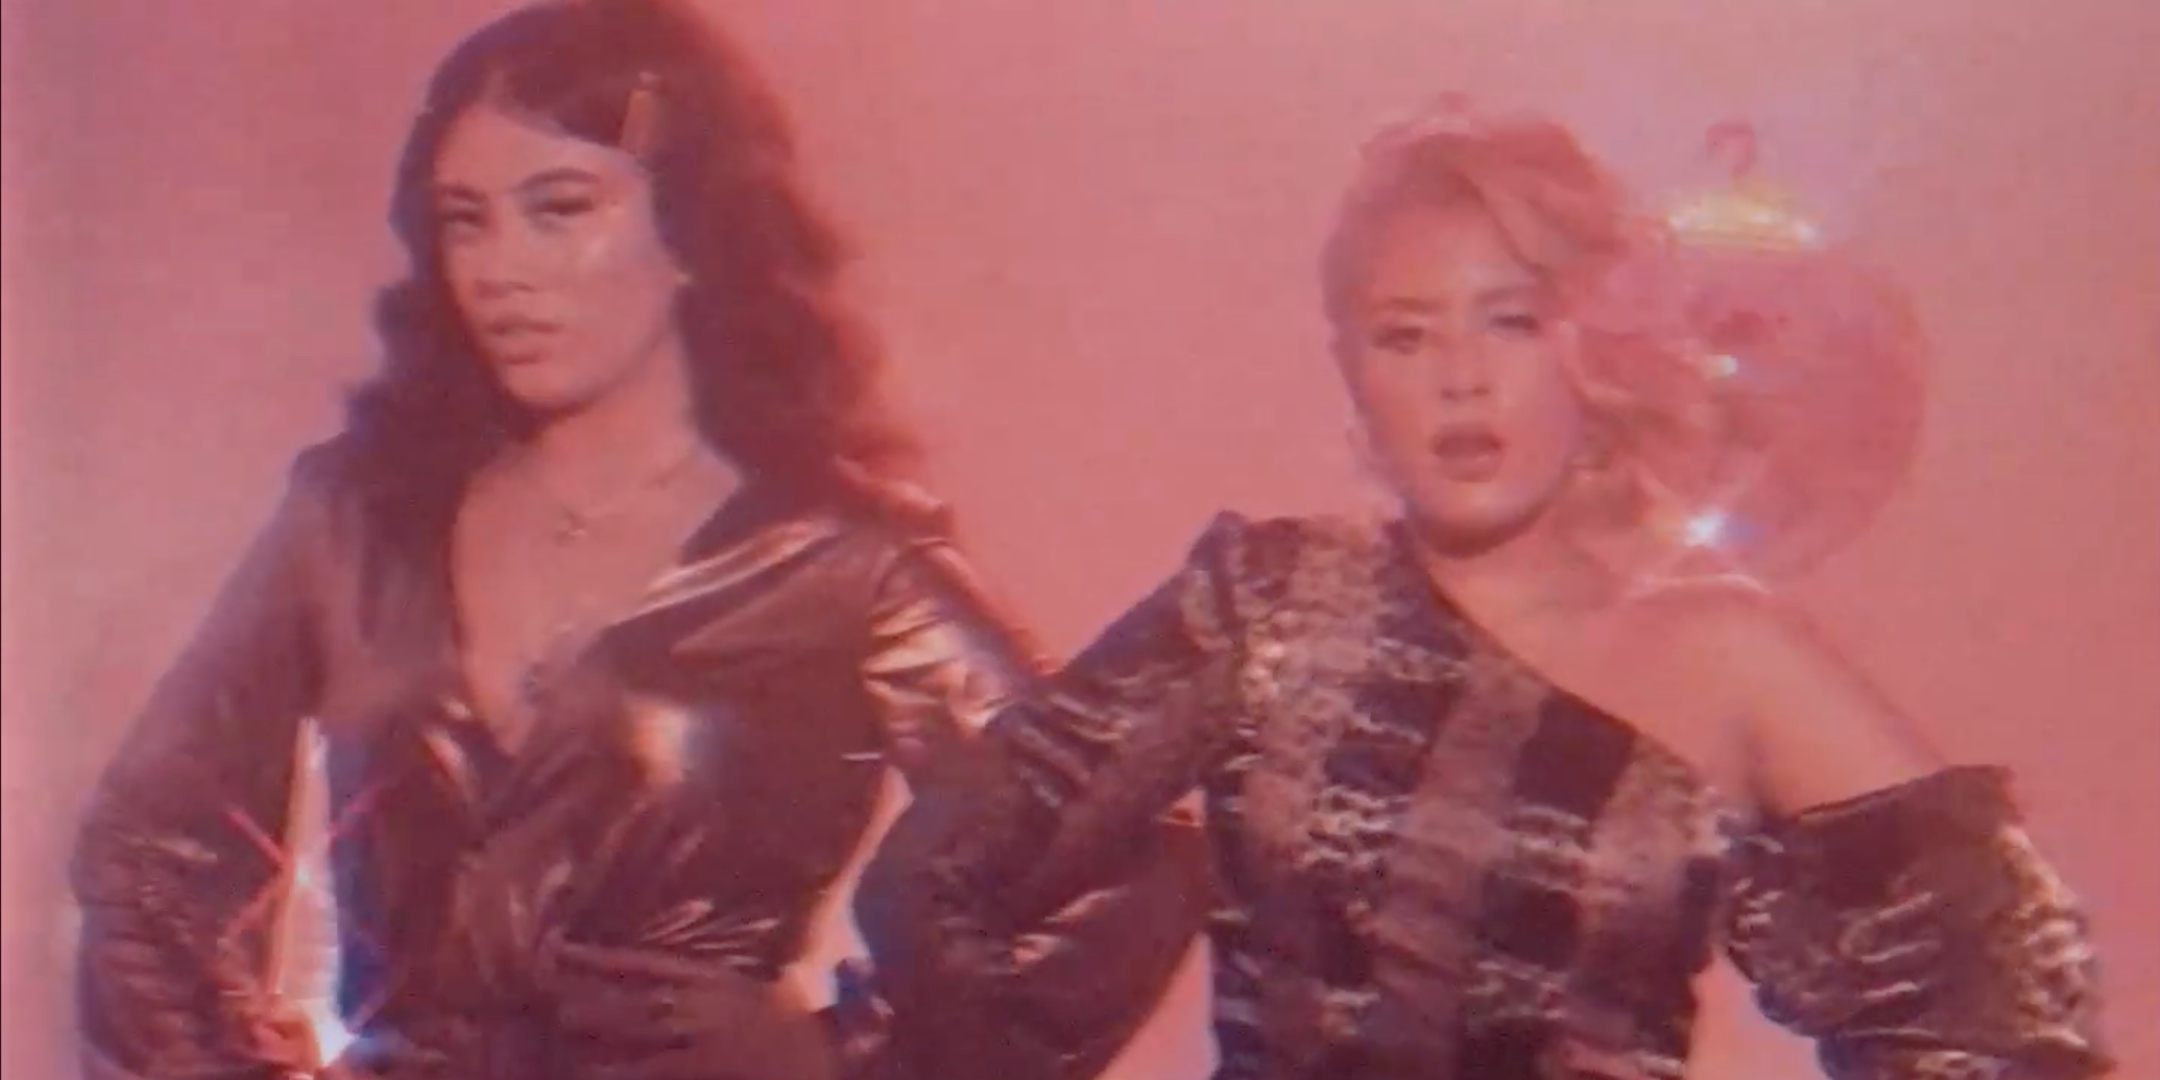 Sister duo Gibbs are disco queens in musical debut, 'No Hearts' – watch